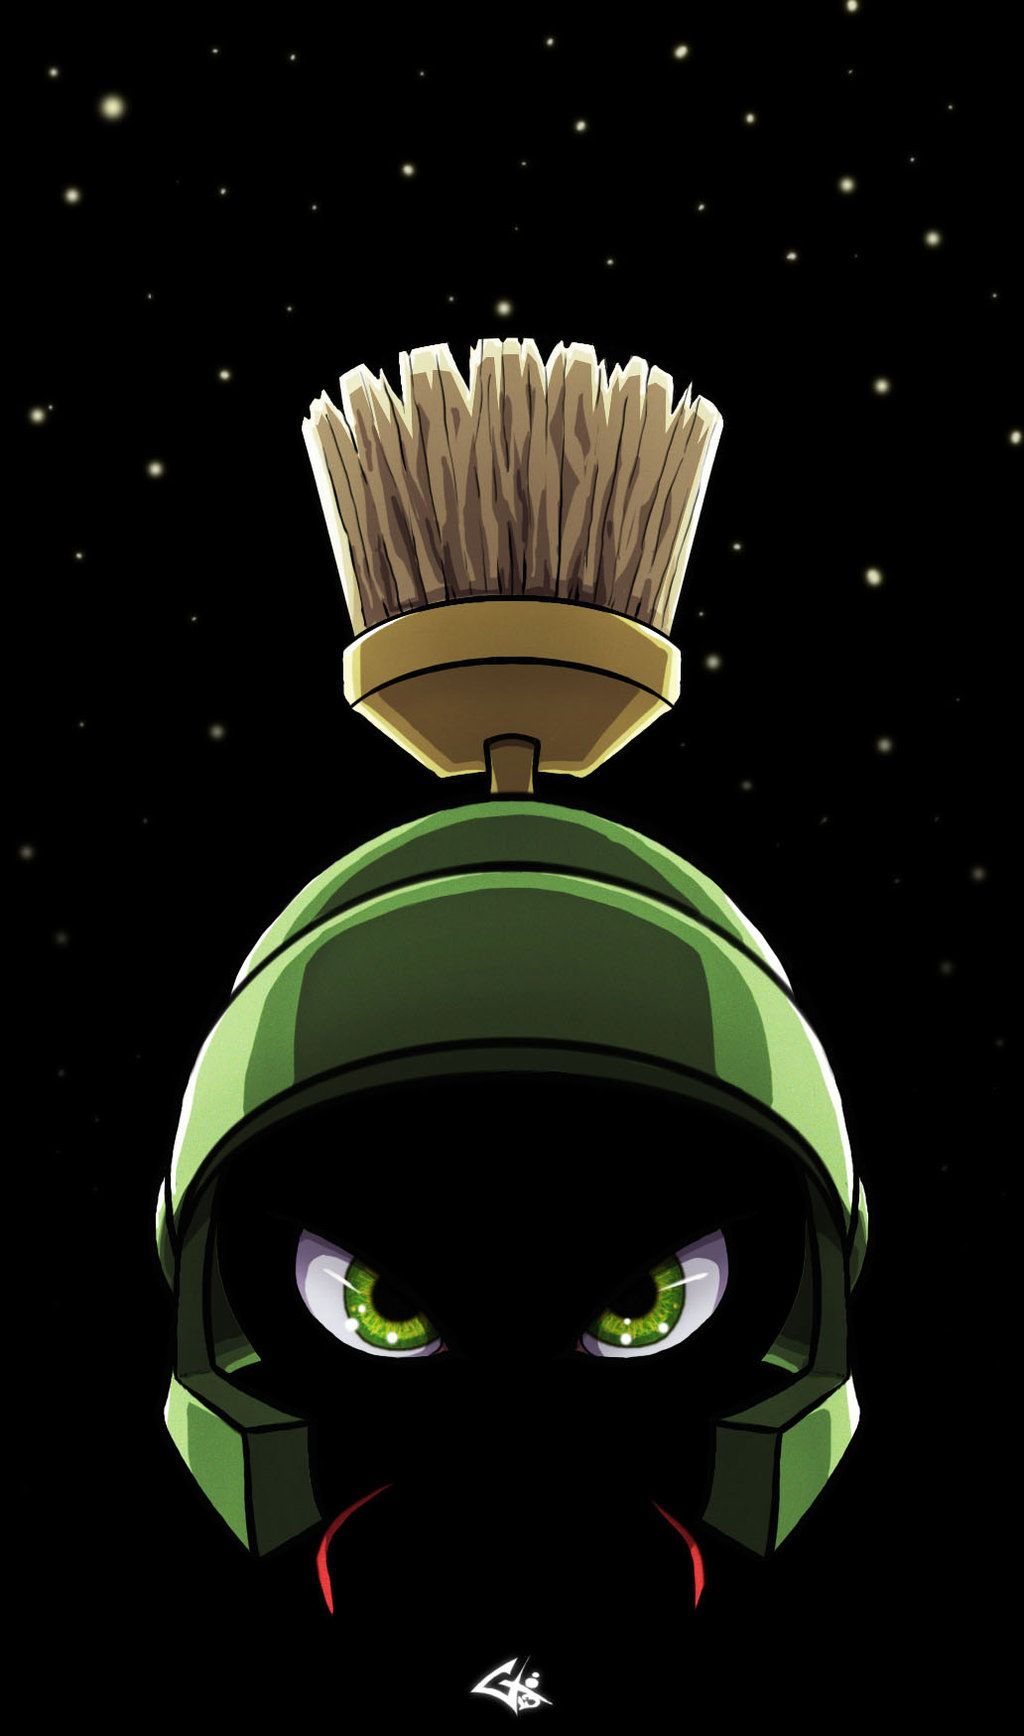 marvin the martian emperor by g chris on deviantart marvin the